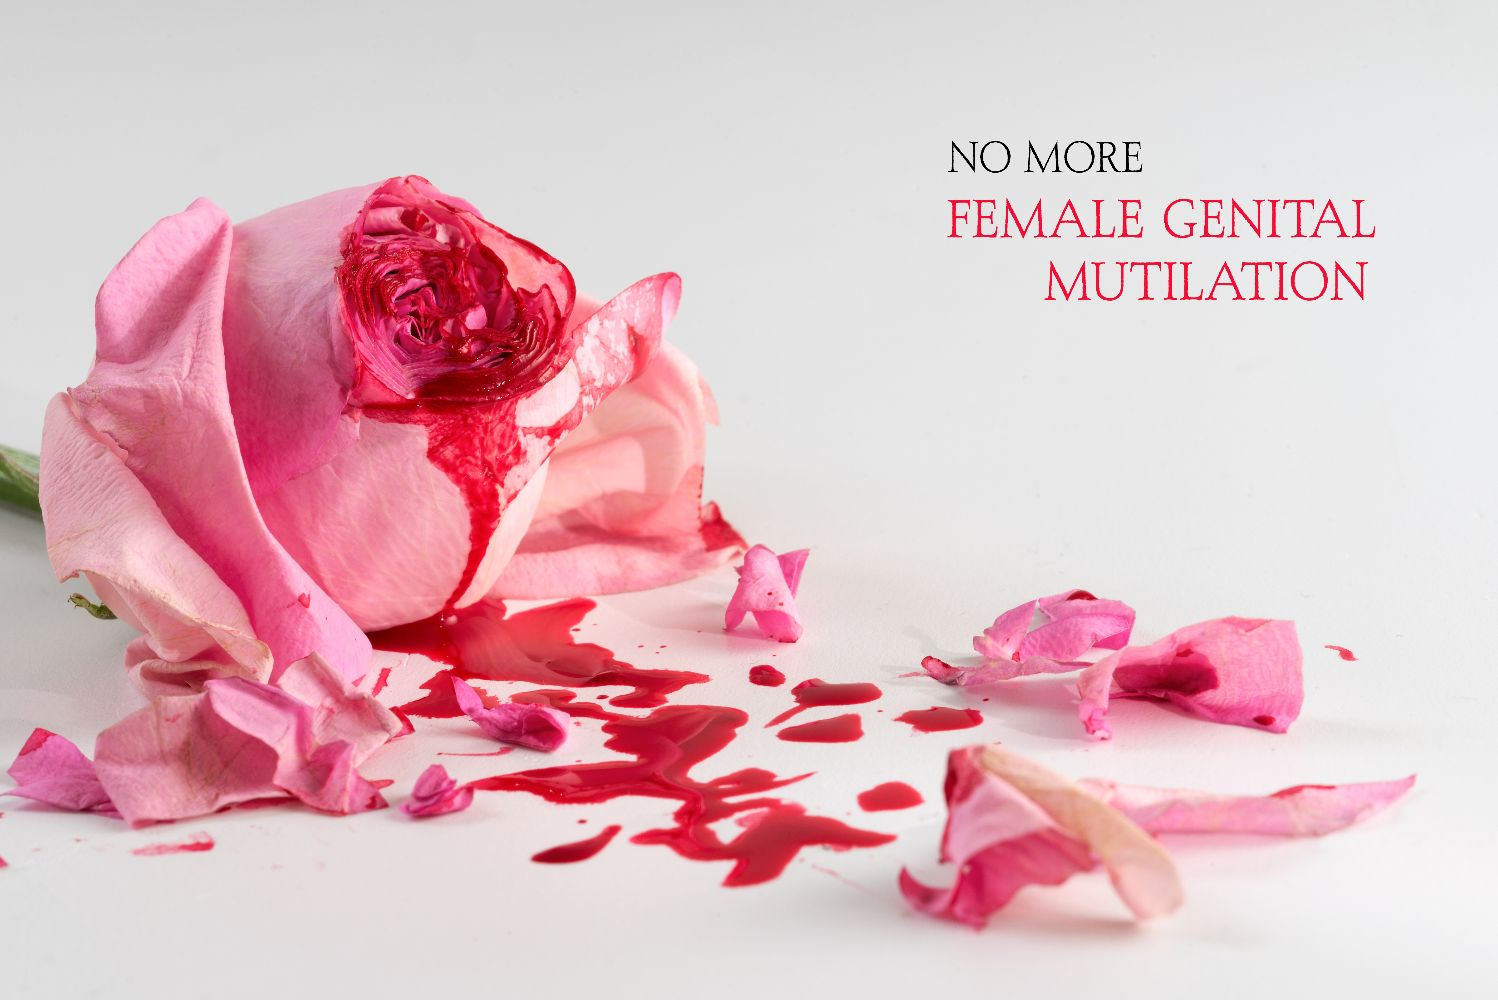 cut rose blossom, blood and petals on a bright gray background with text No More Female Genital Mutilation,  concept for the international day of zero tolerance for FGM on 6 february